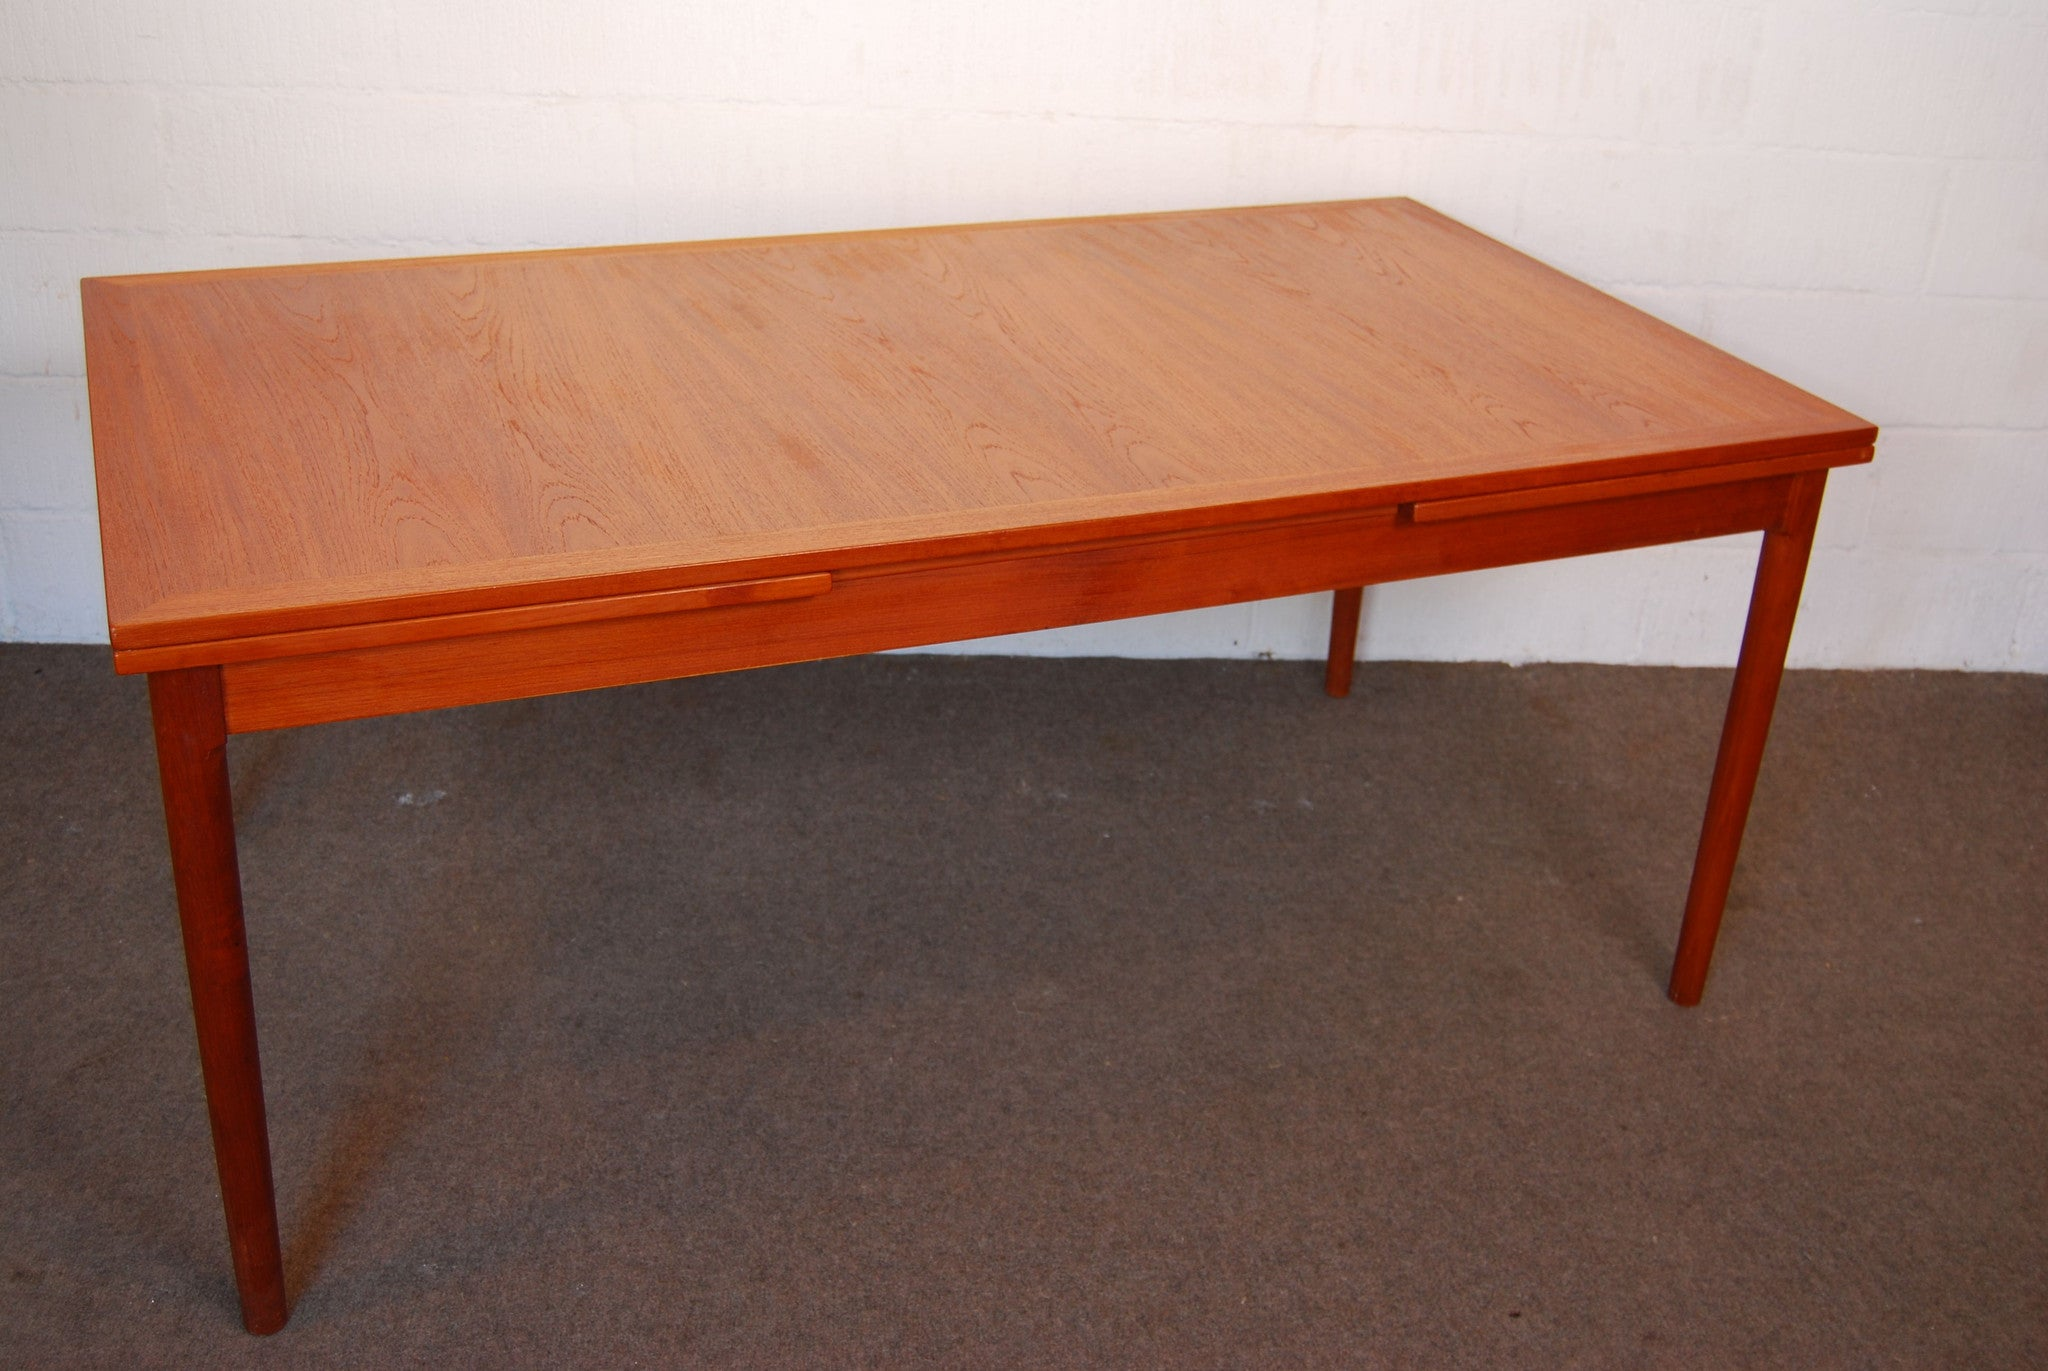 Large dining table by Slagelse MÌübelfabrik